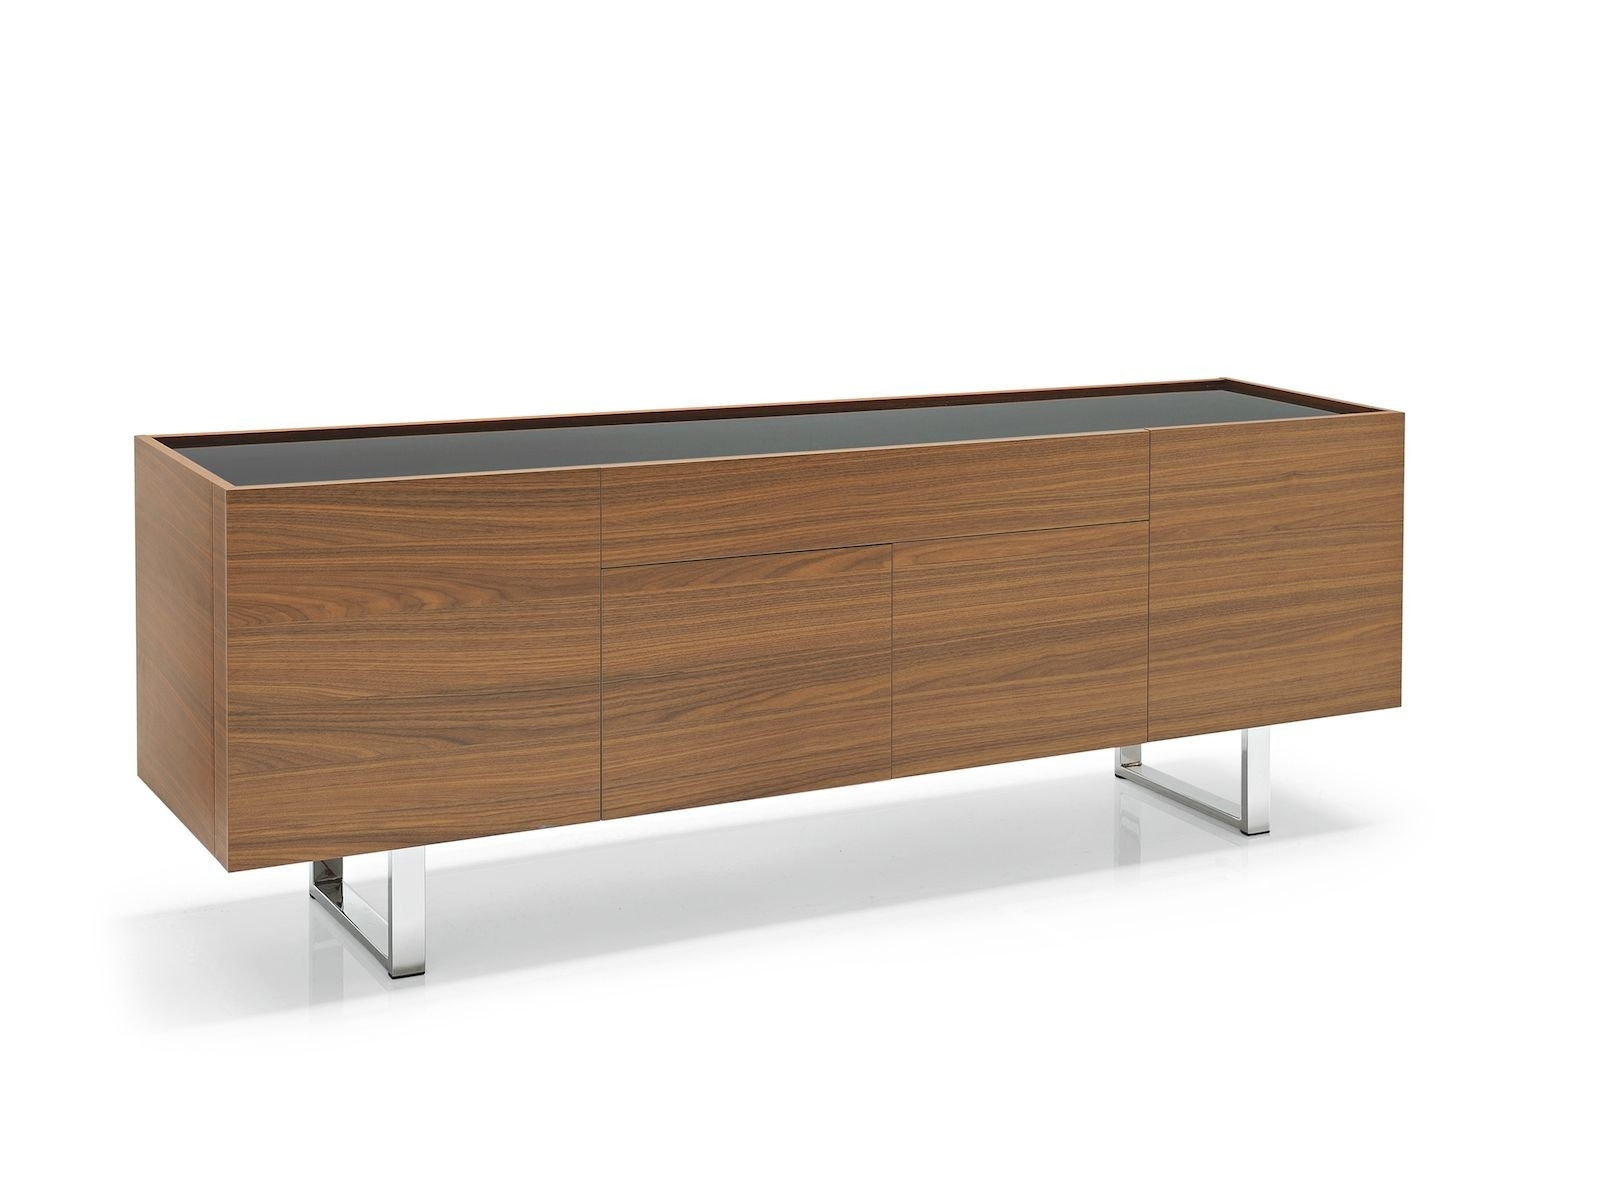 Calligaris Horizon 4 Door With Central Drawer Sideboard – Frank Mc Gowan With Regard To Best And Newest Walnut Finish 4 Door Sideboards (View 6 of 20)